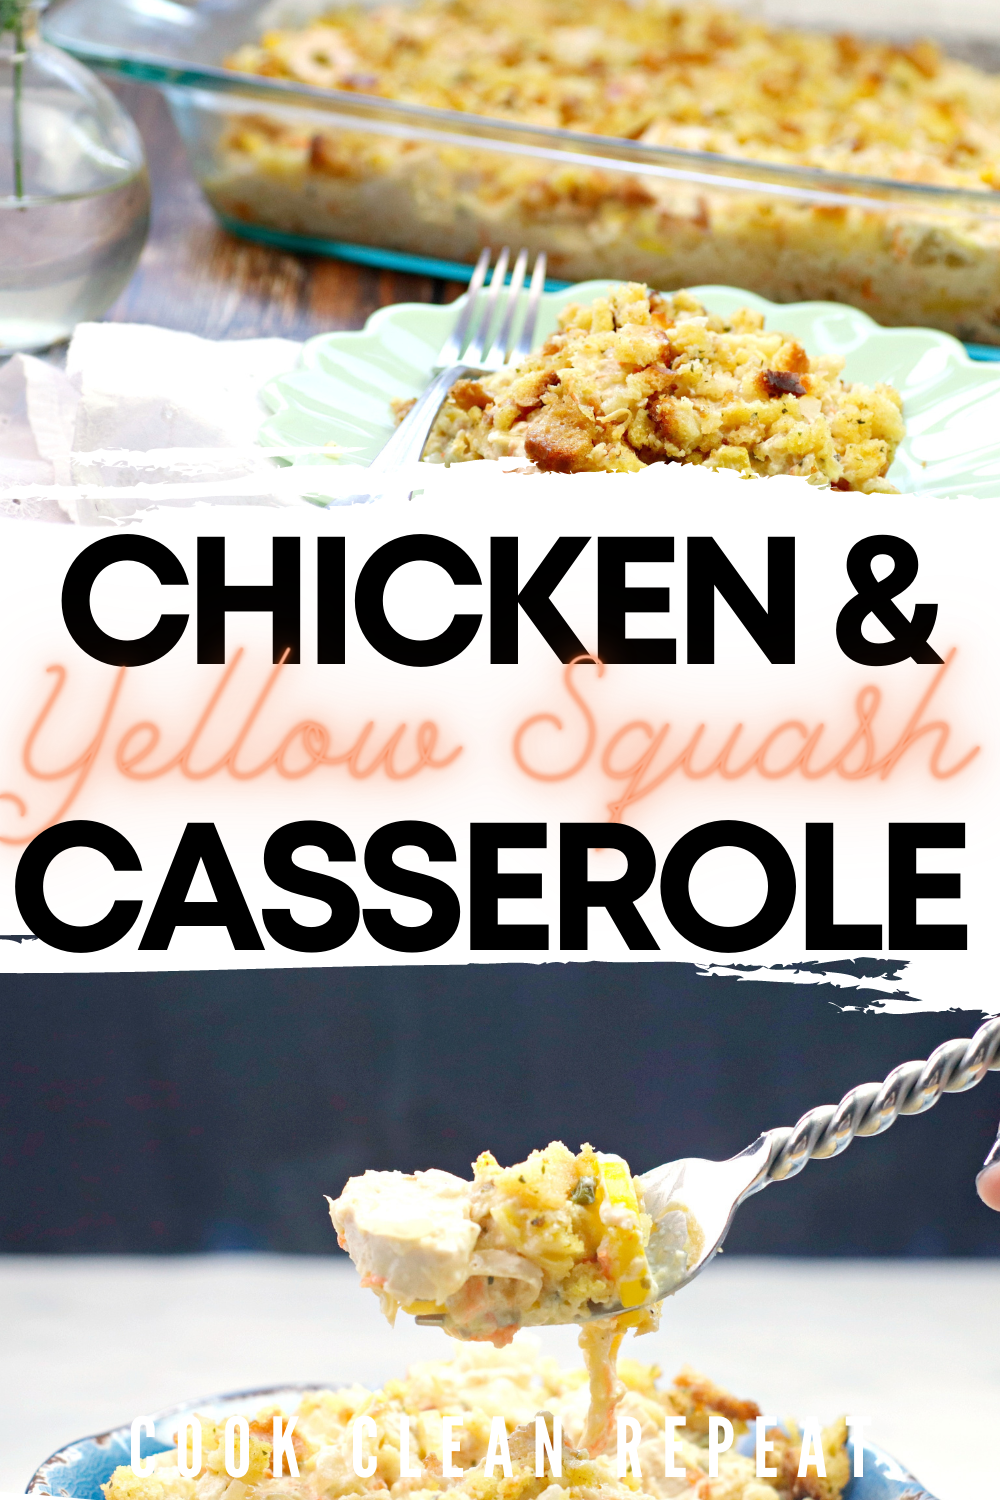 Pin showing the title across the middle with the finished chicken and yellow squash casserole photos at top and bottom.